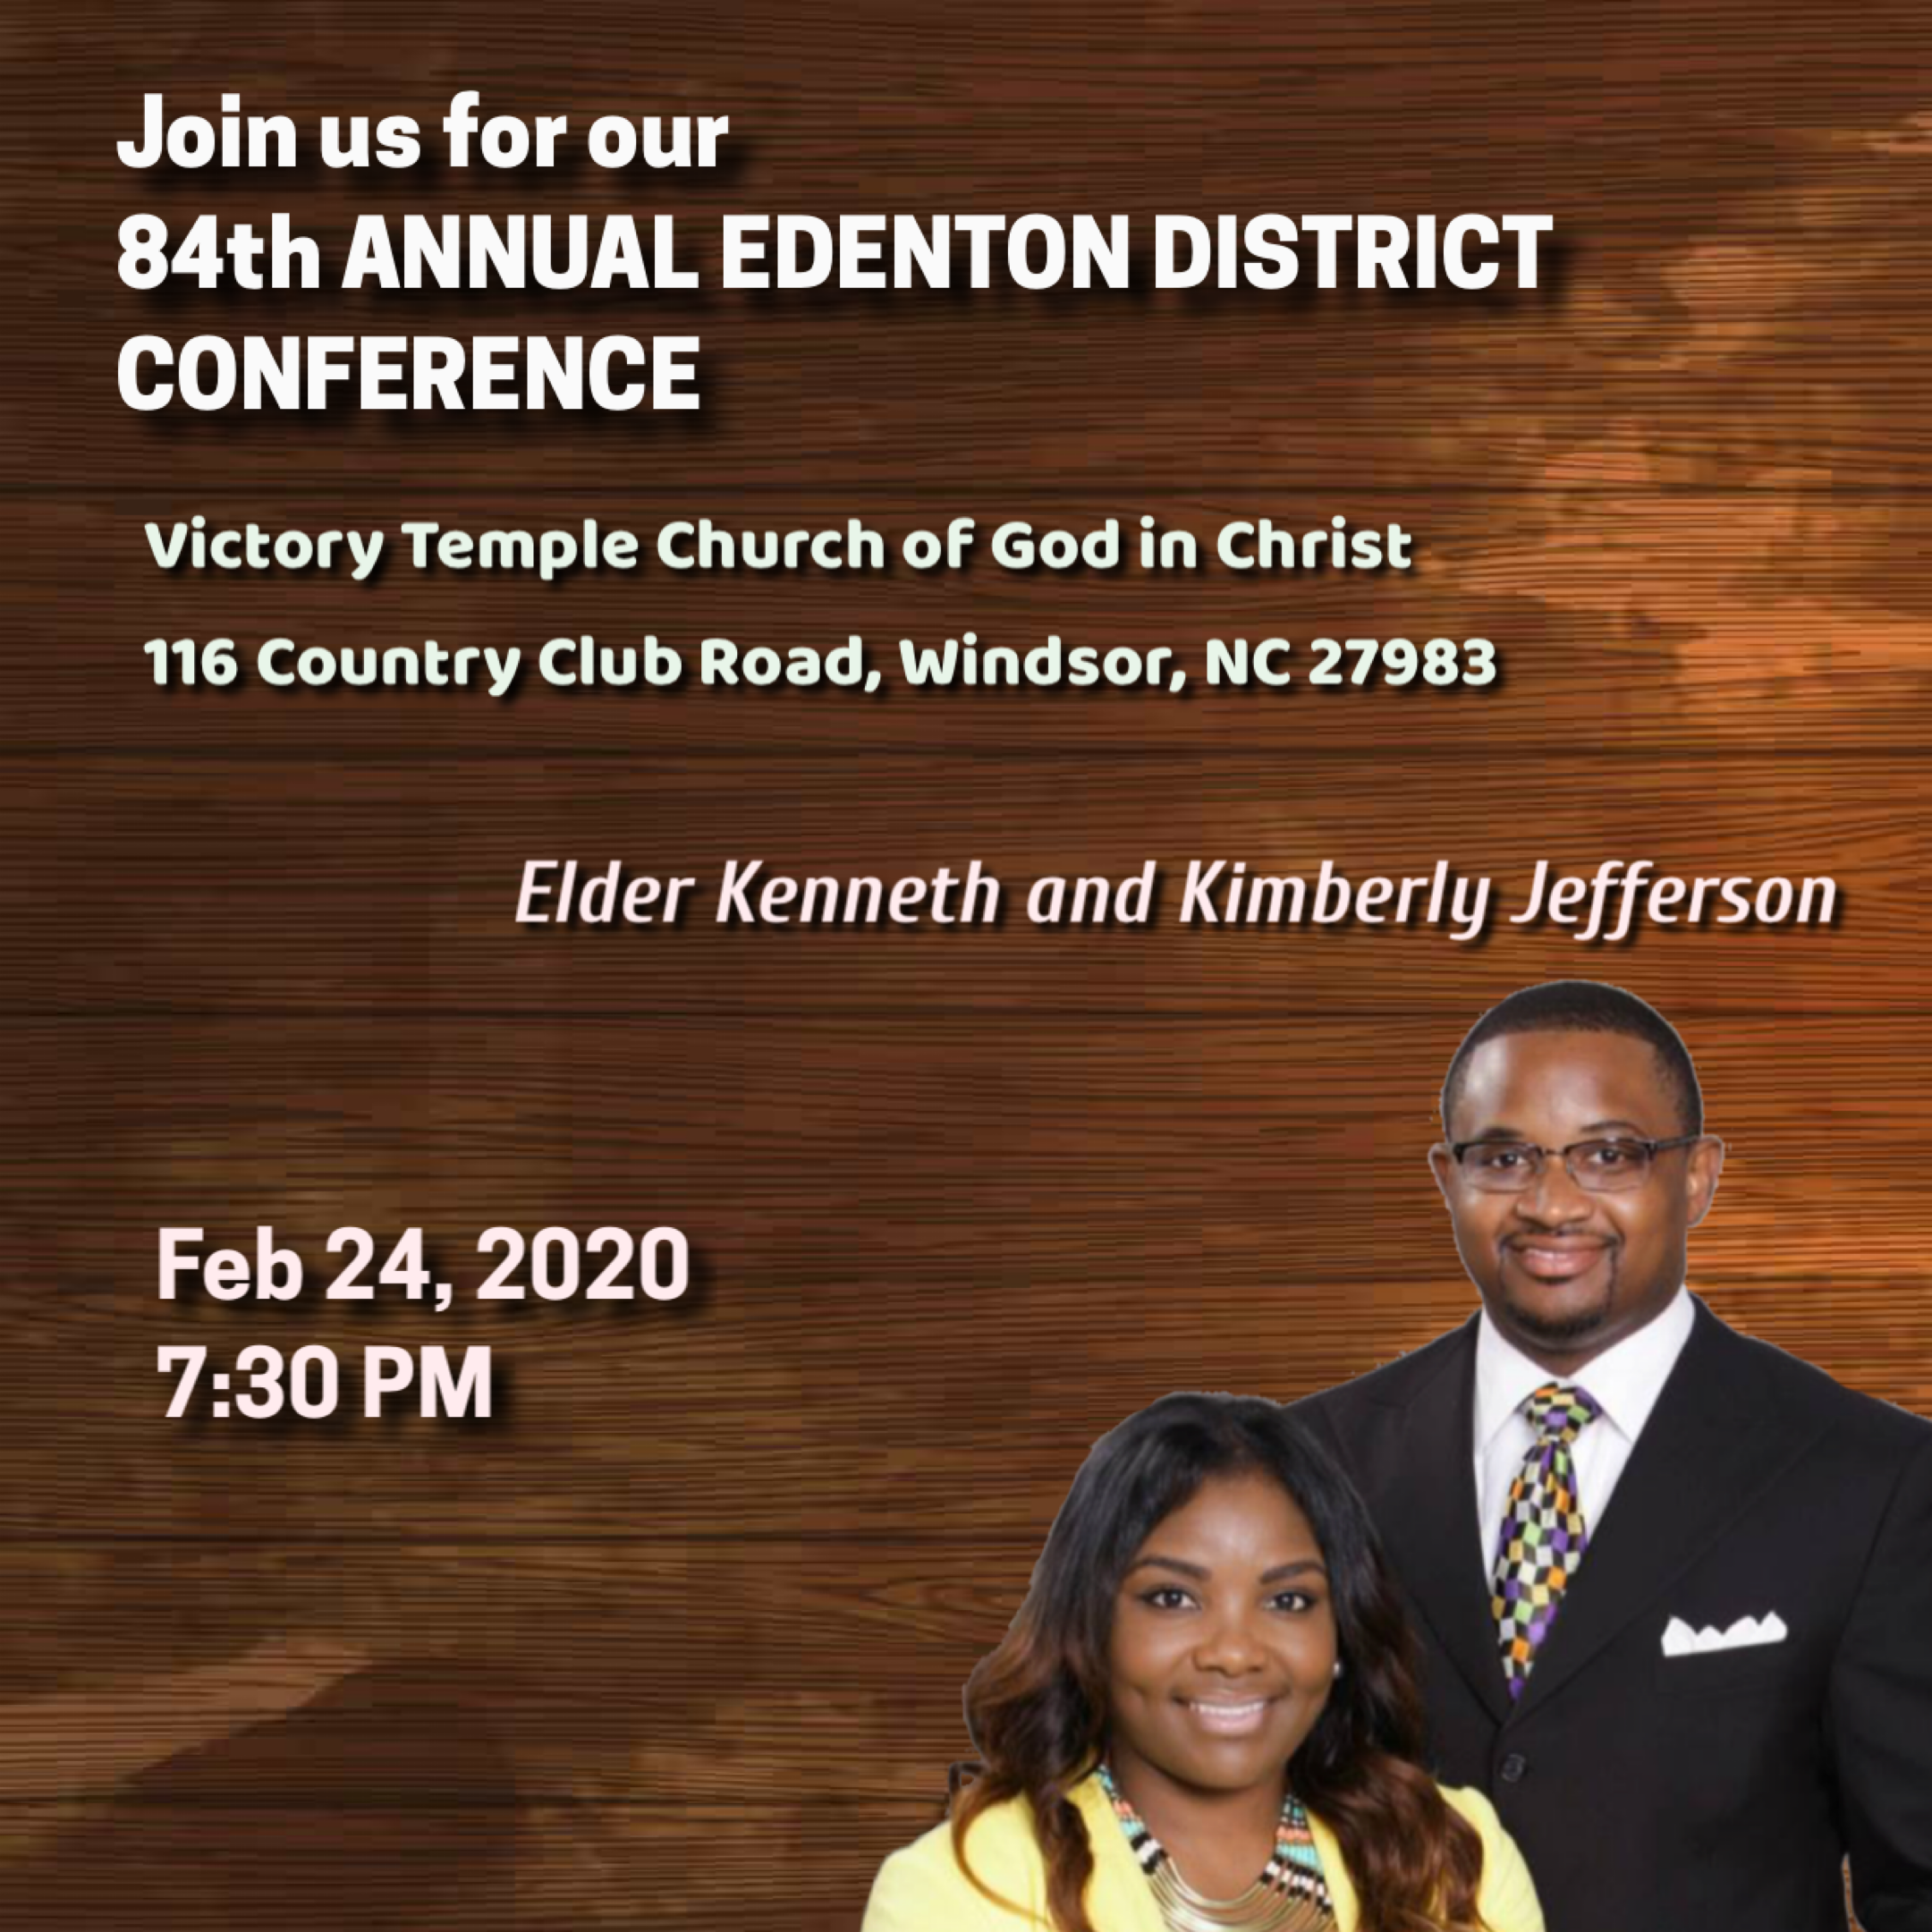 84th Annual Edenton District Conference, Monday Night - Elder Kenneth Jefferson Jr